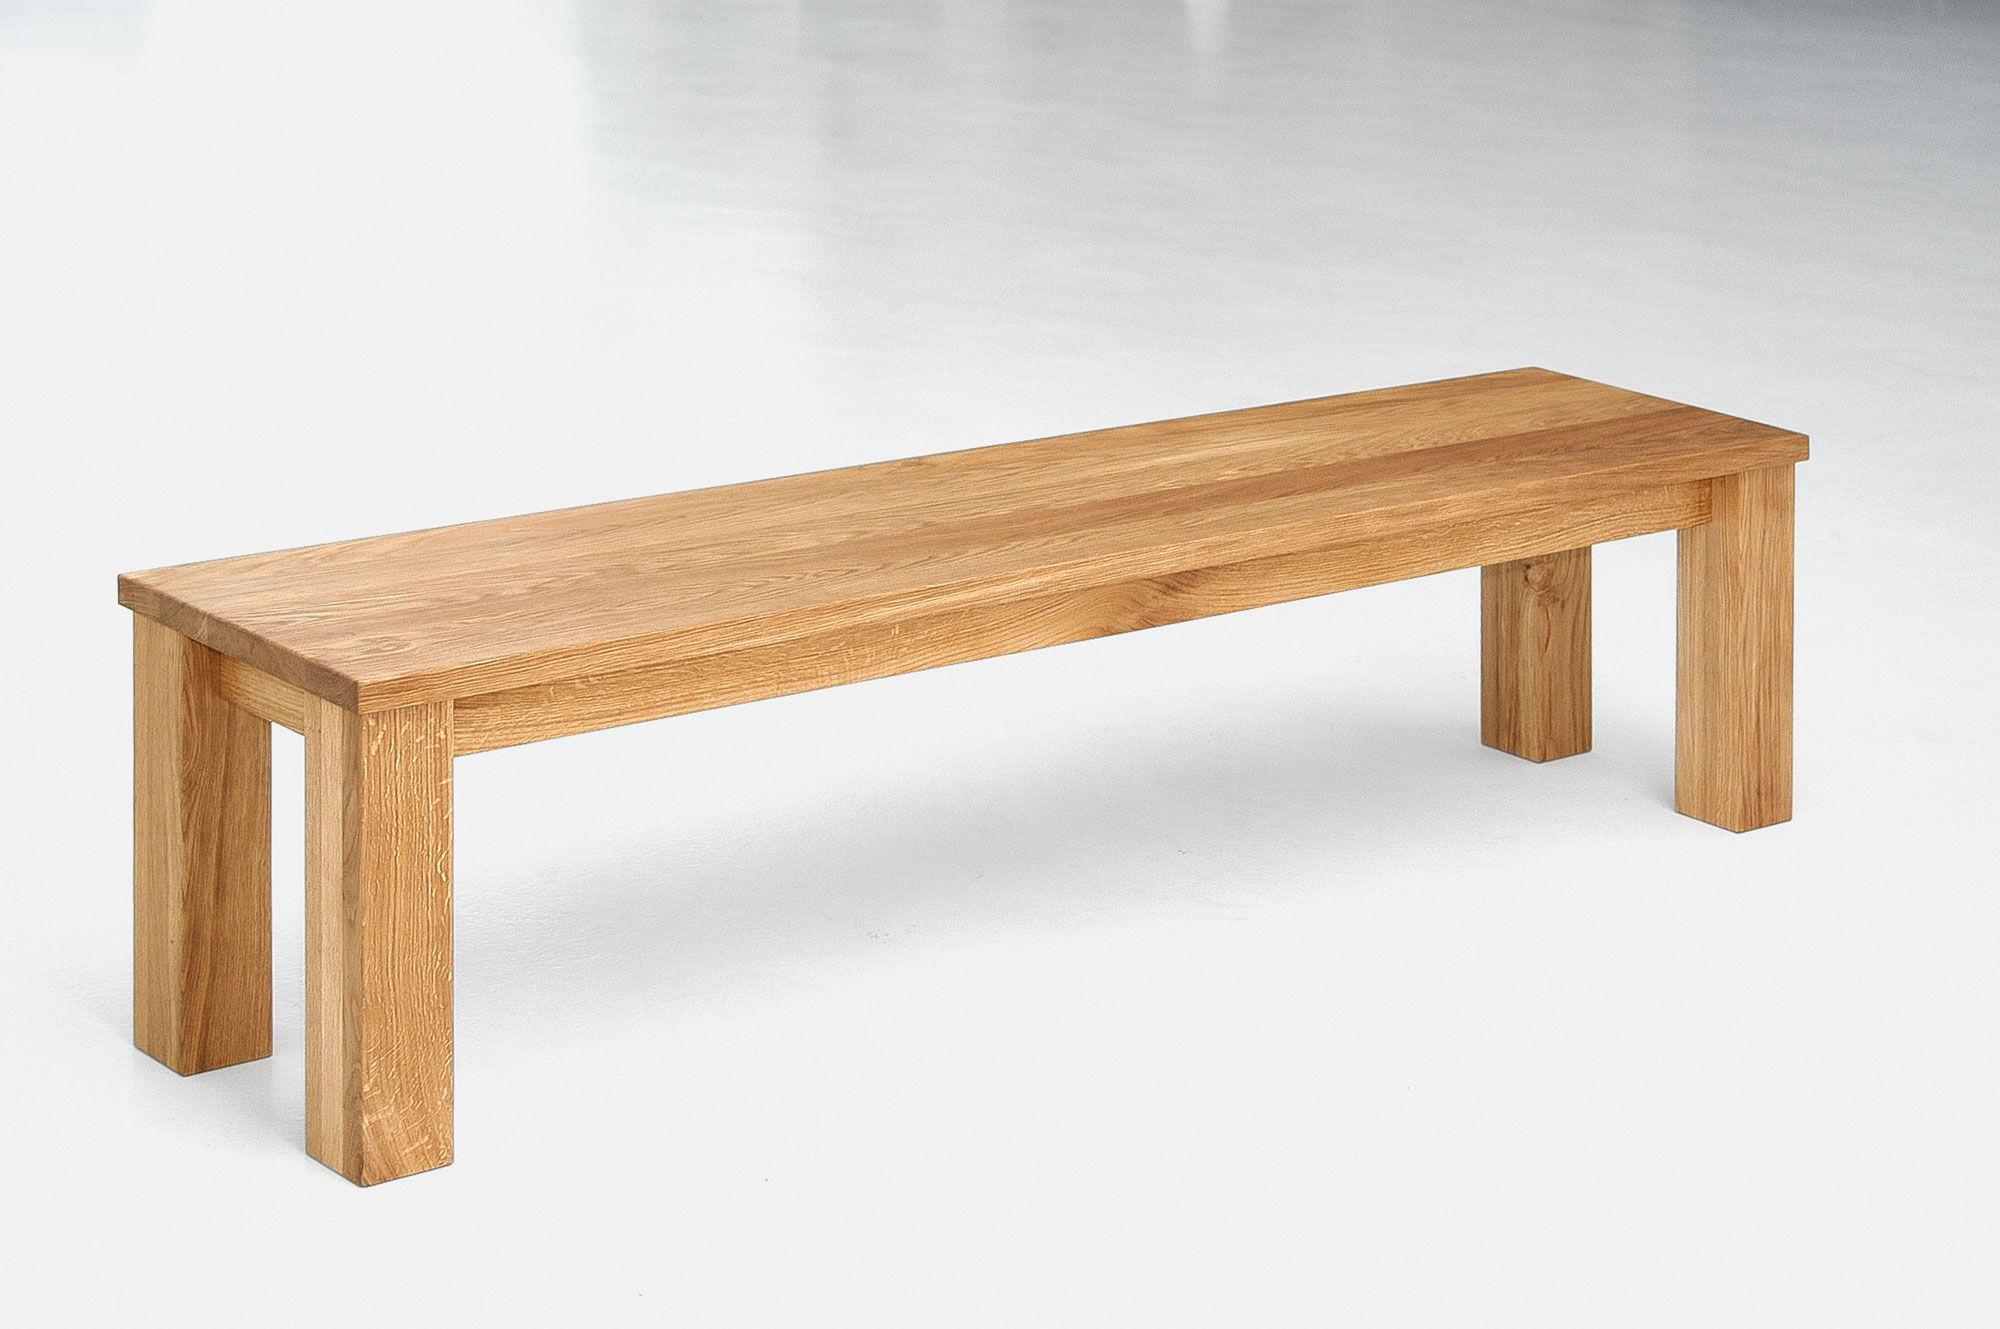 Oak Bench in Solid Wood FORTE 3 0212 custom made in solid wood by vitamin design